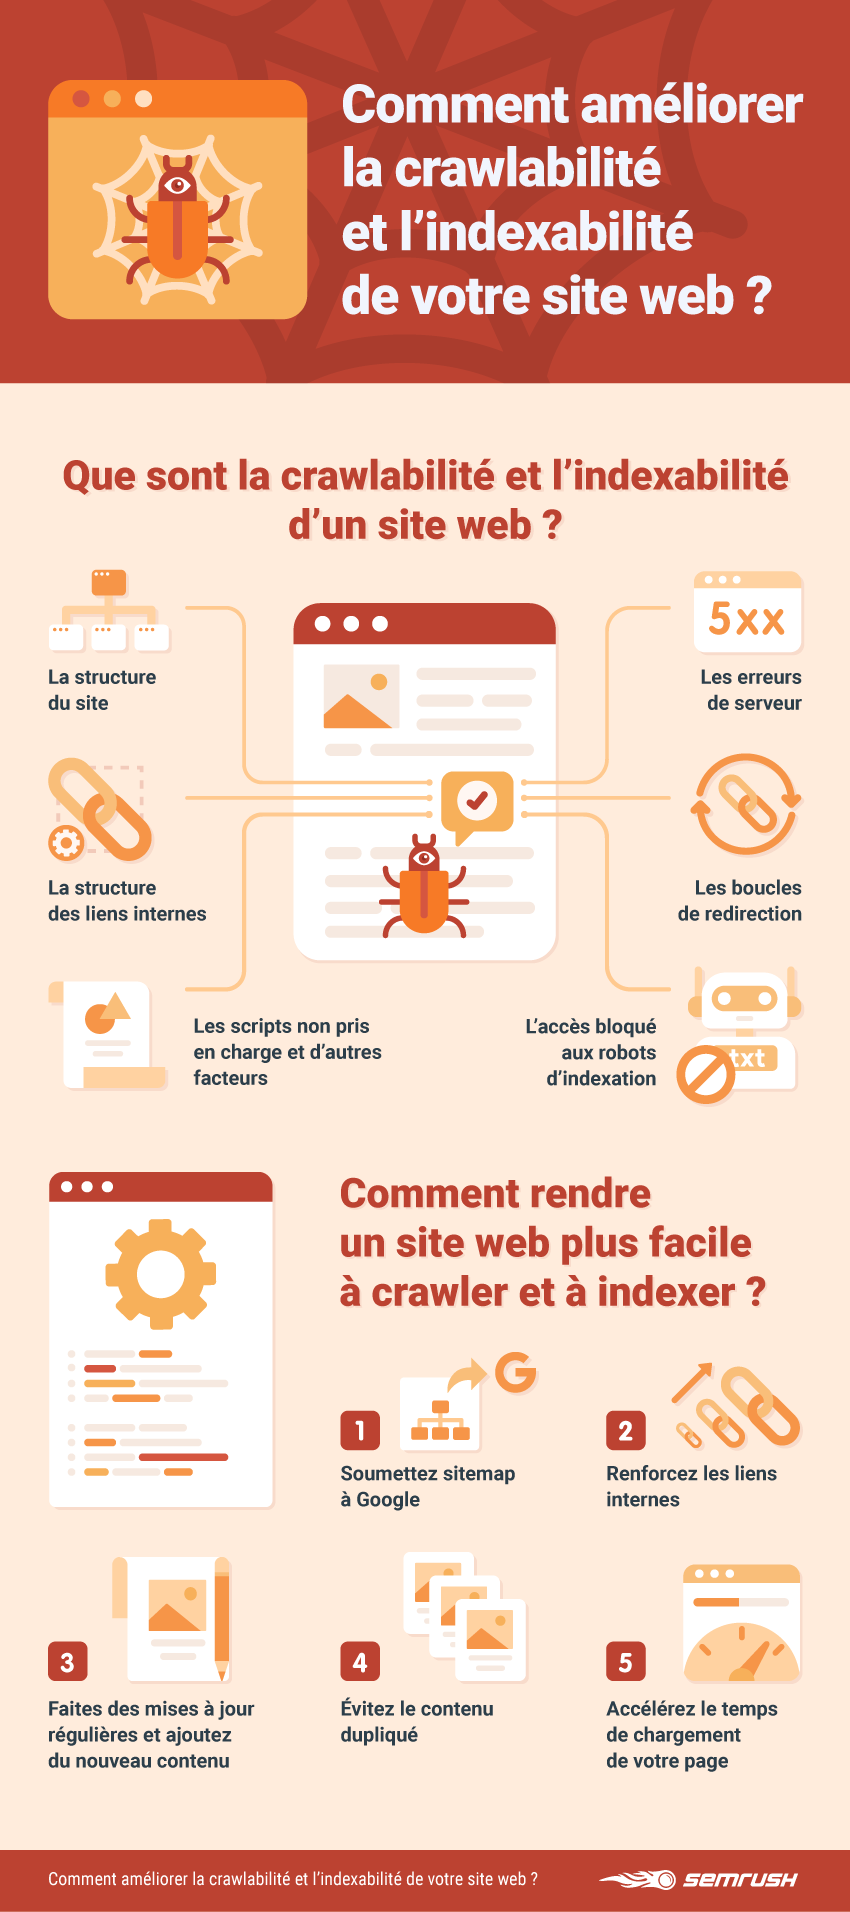 crawlability-infographic-fr.png